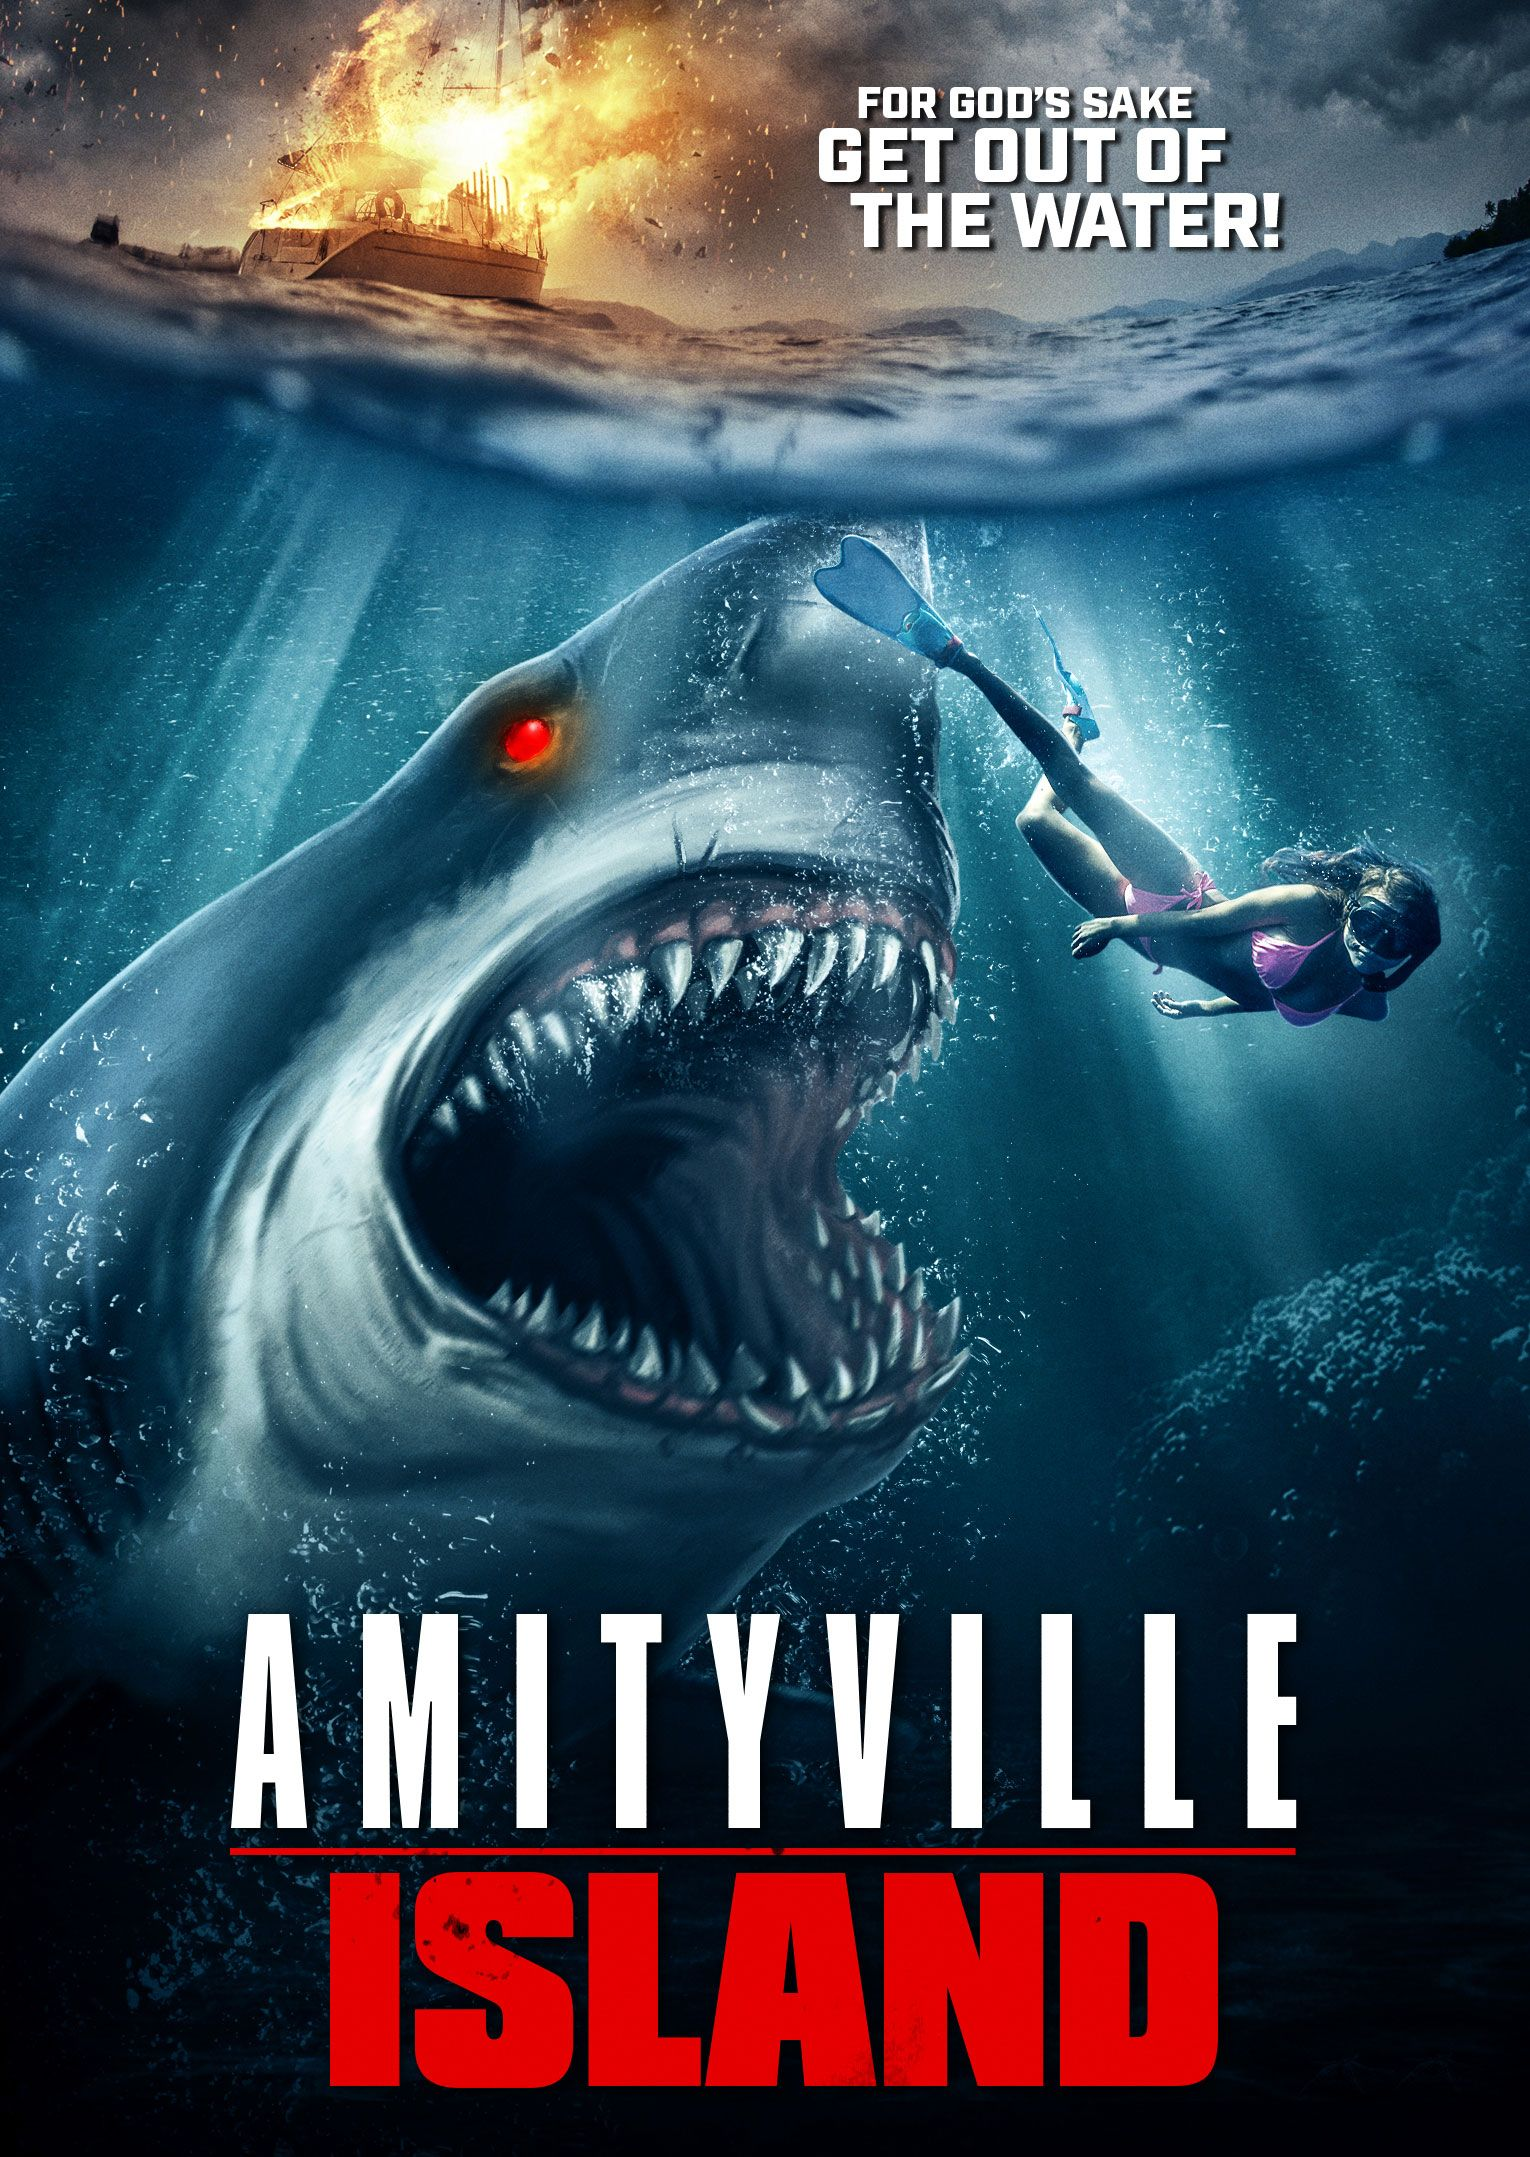 new shark movie 2020 - Google Search in 2020   Horror movies, Island movies,  Best horror movies